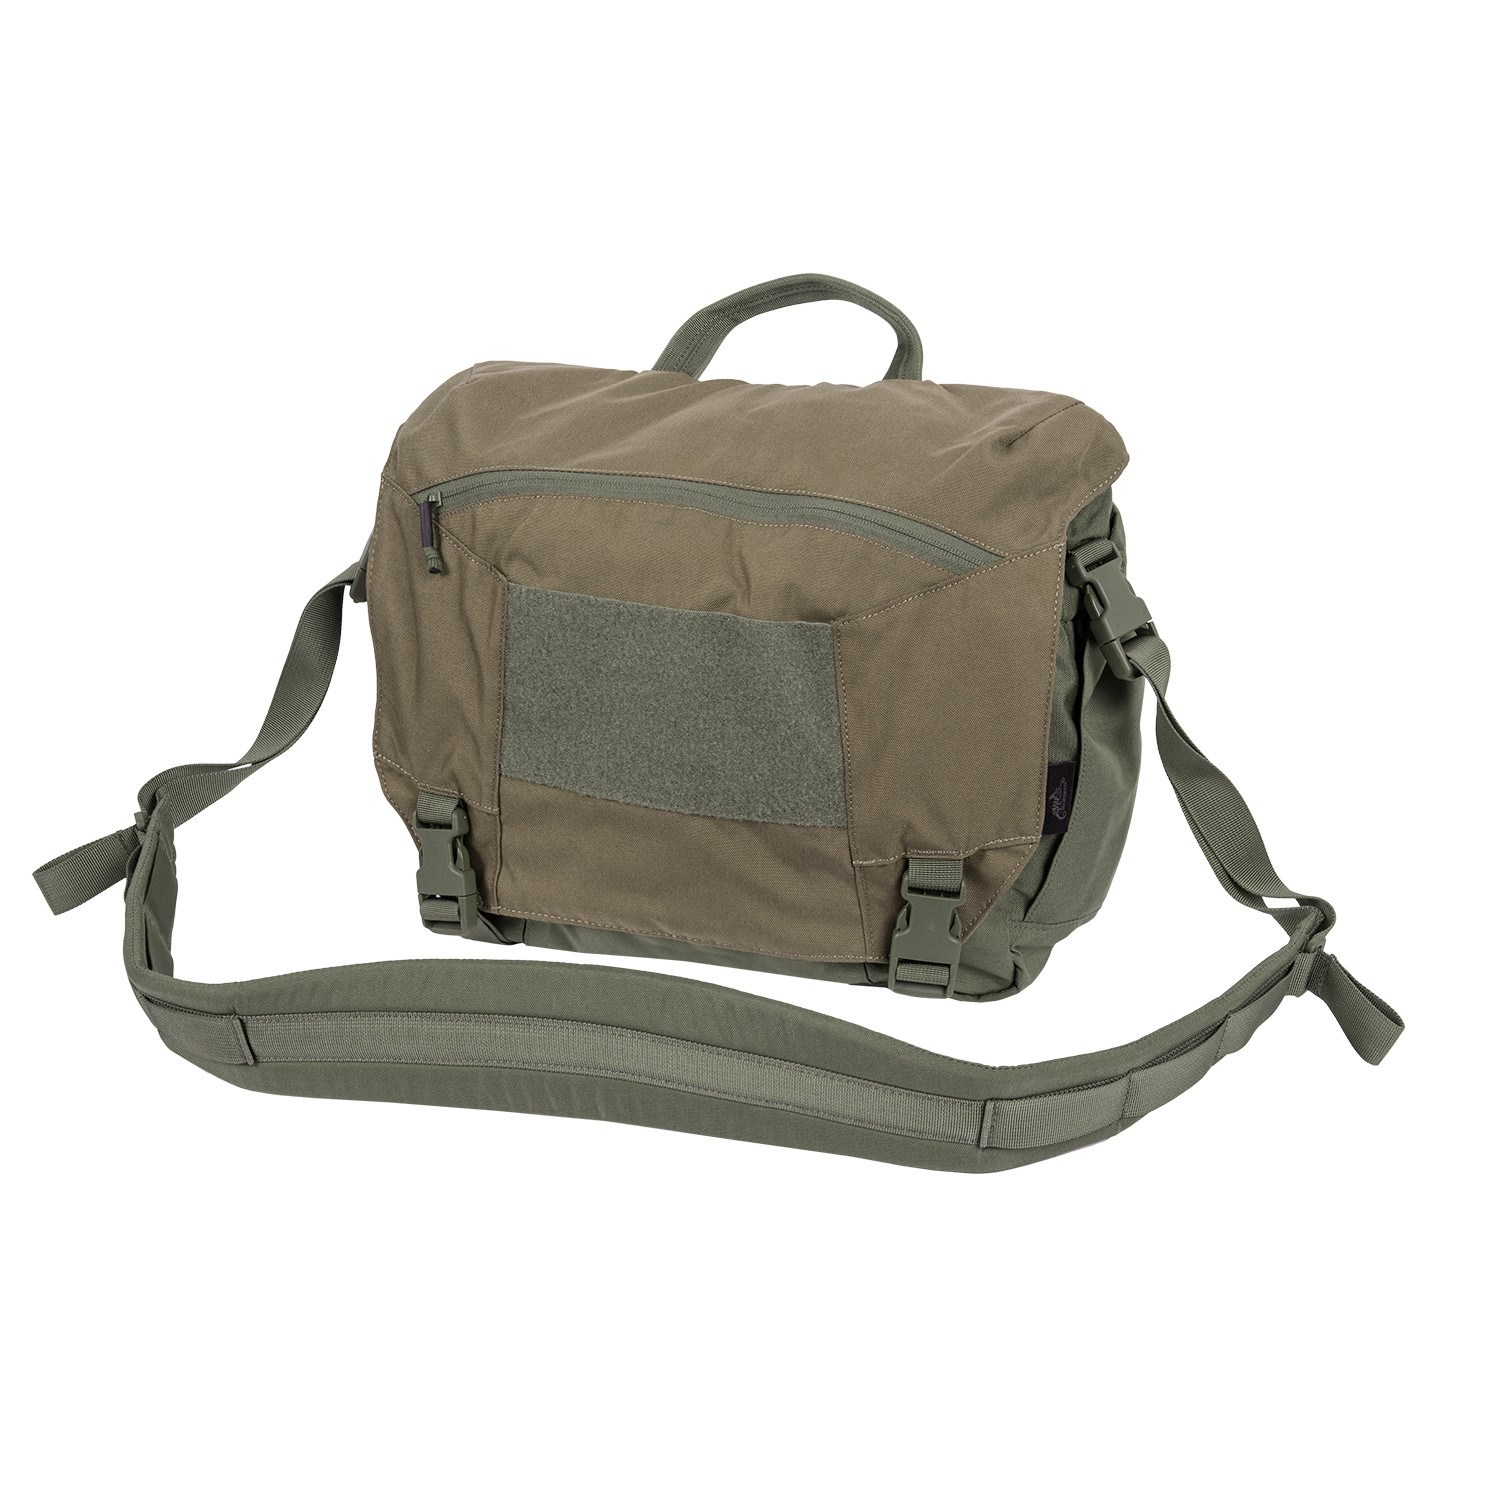 Taška cez rameno URBAN COURIER MEDIUM COYOTE/ADAPTIVE GREEN